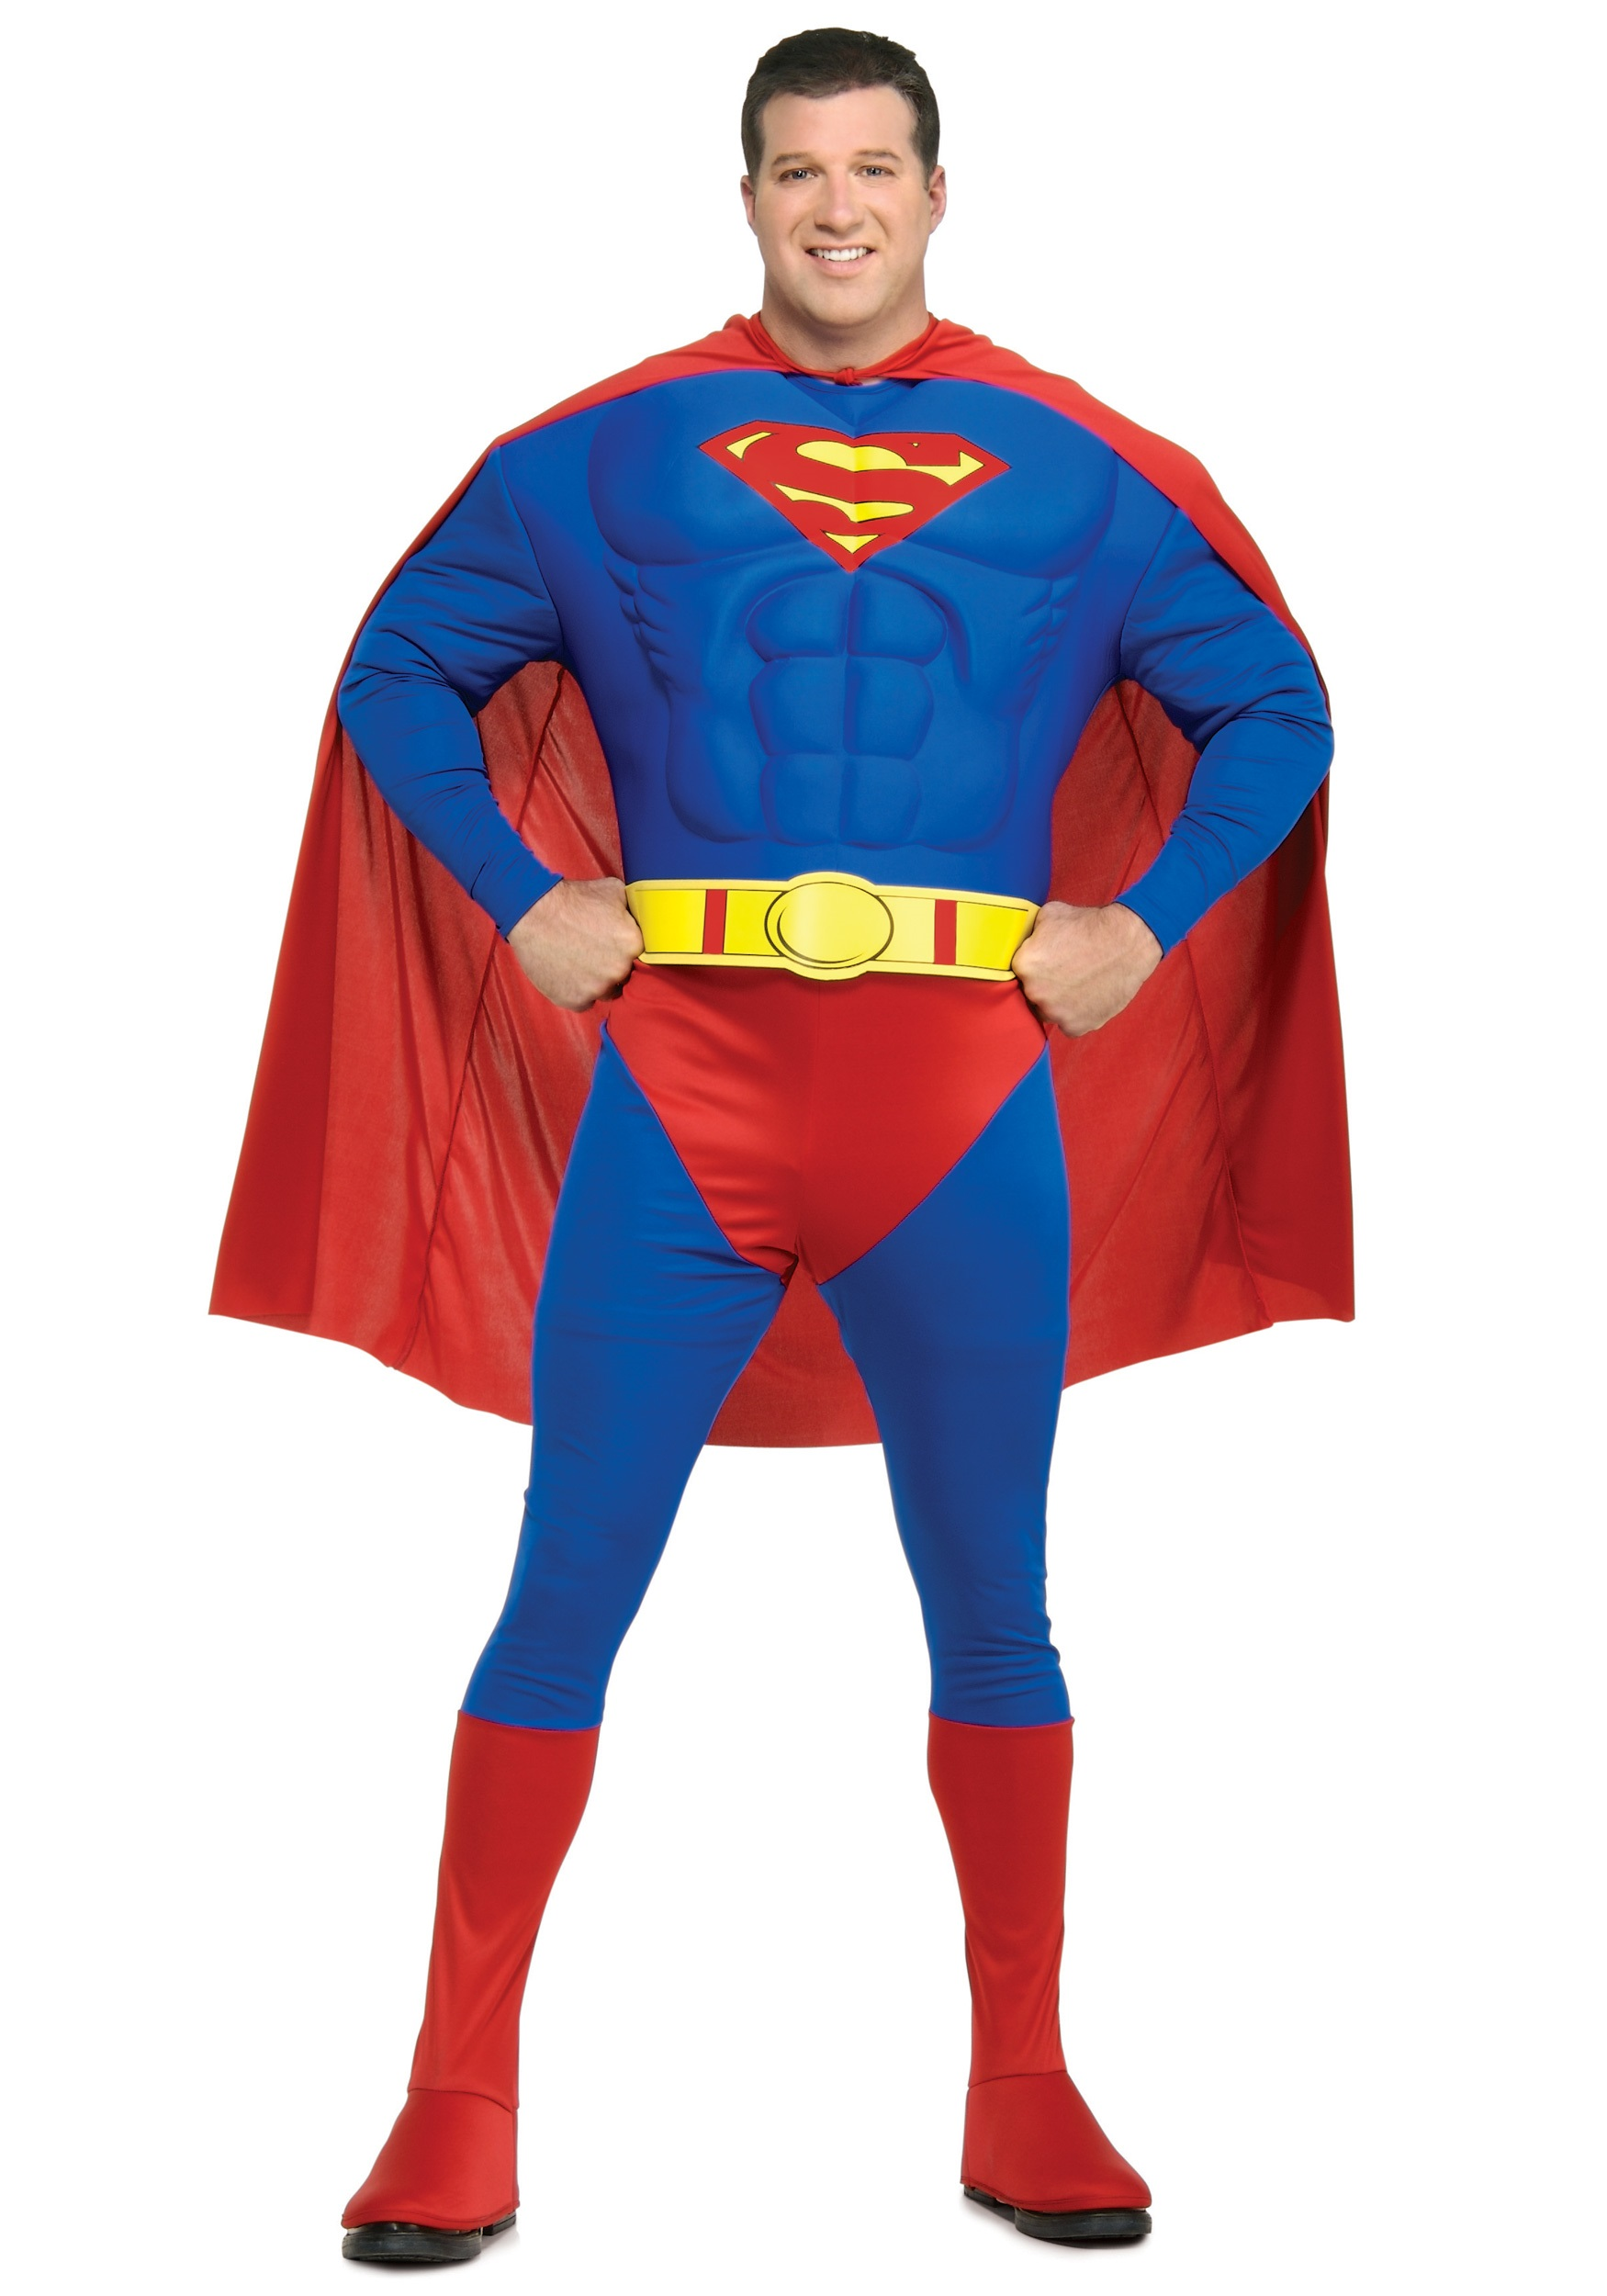 Superman Plus Size Costume  sc 1 st  Halloween Costumes & Adult Superman Costume Plus Size - Superhero Halloween Costumes 1X